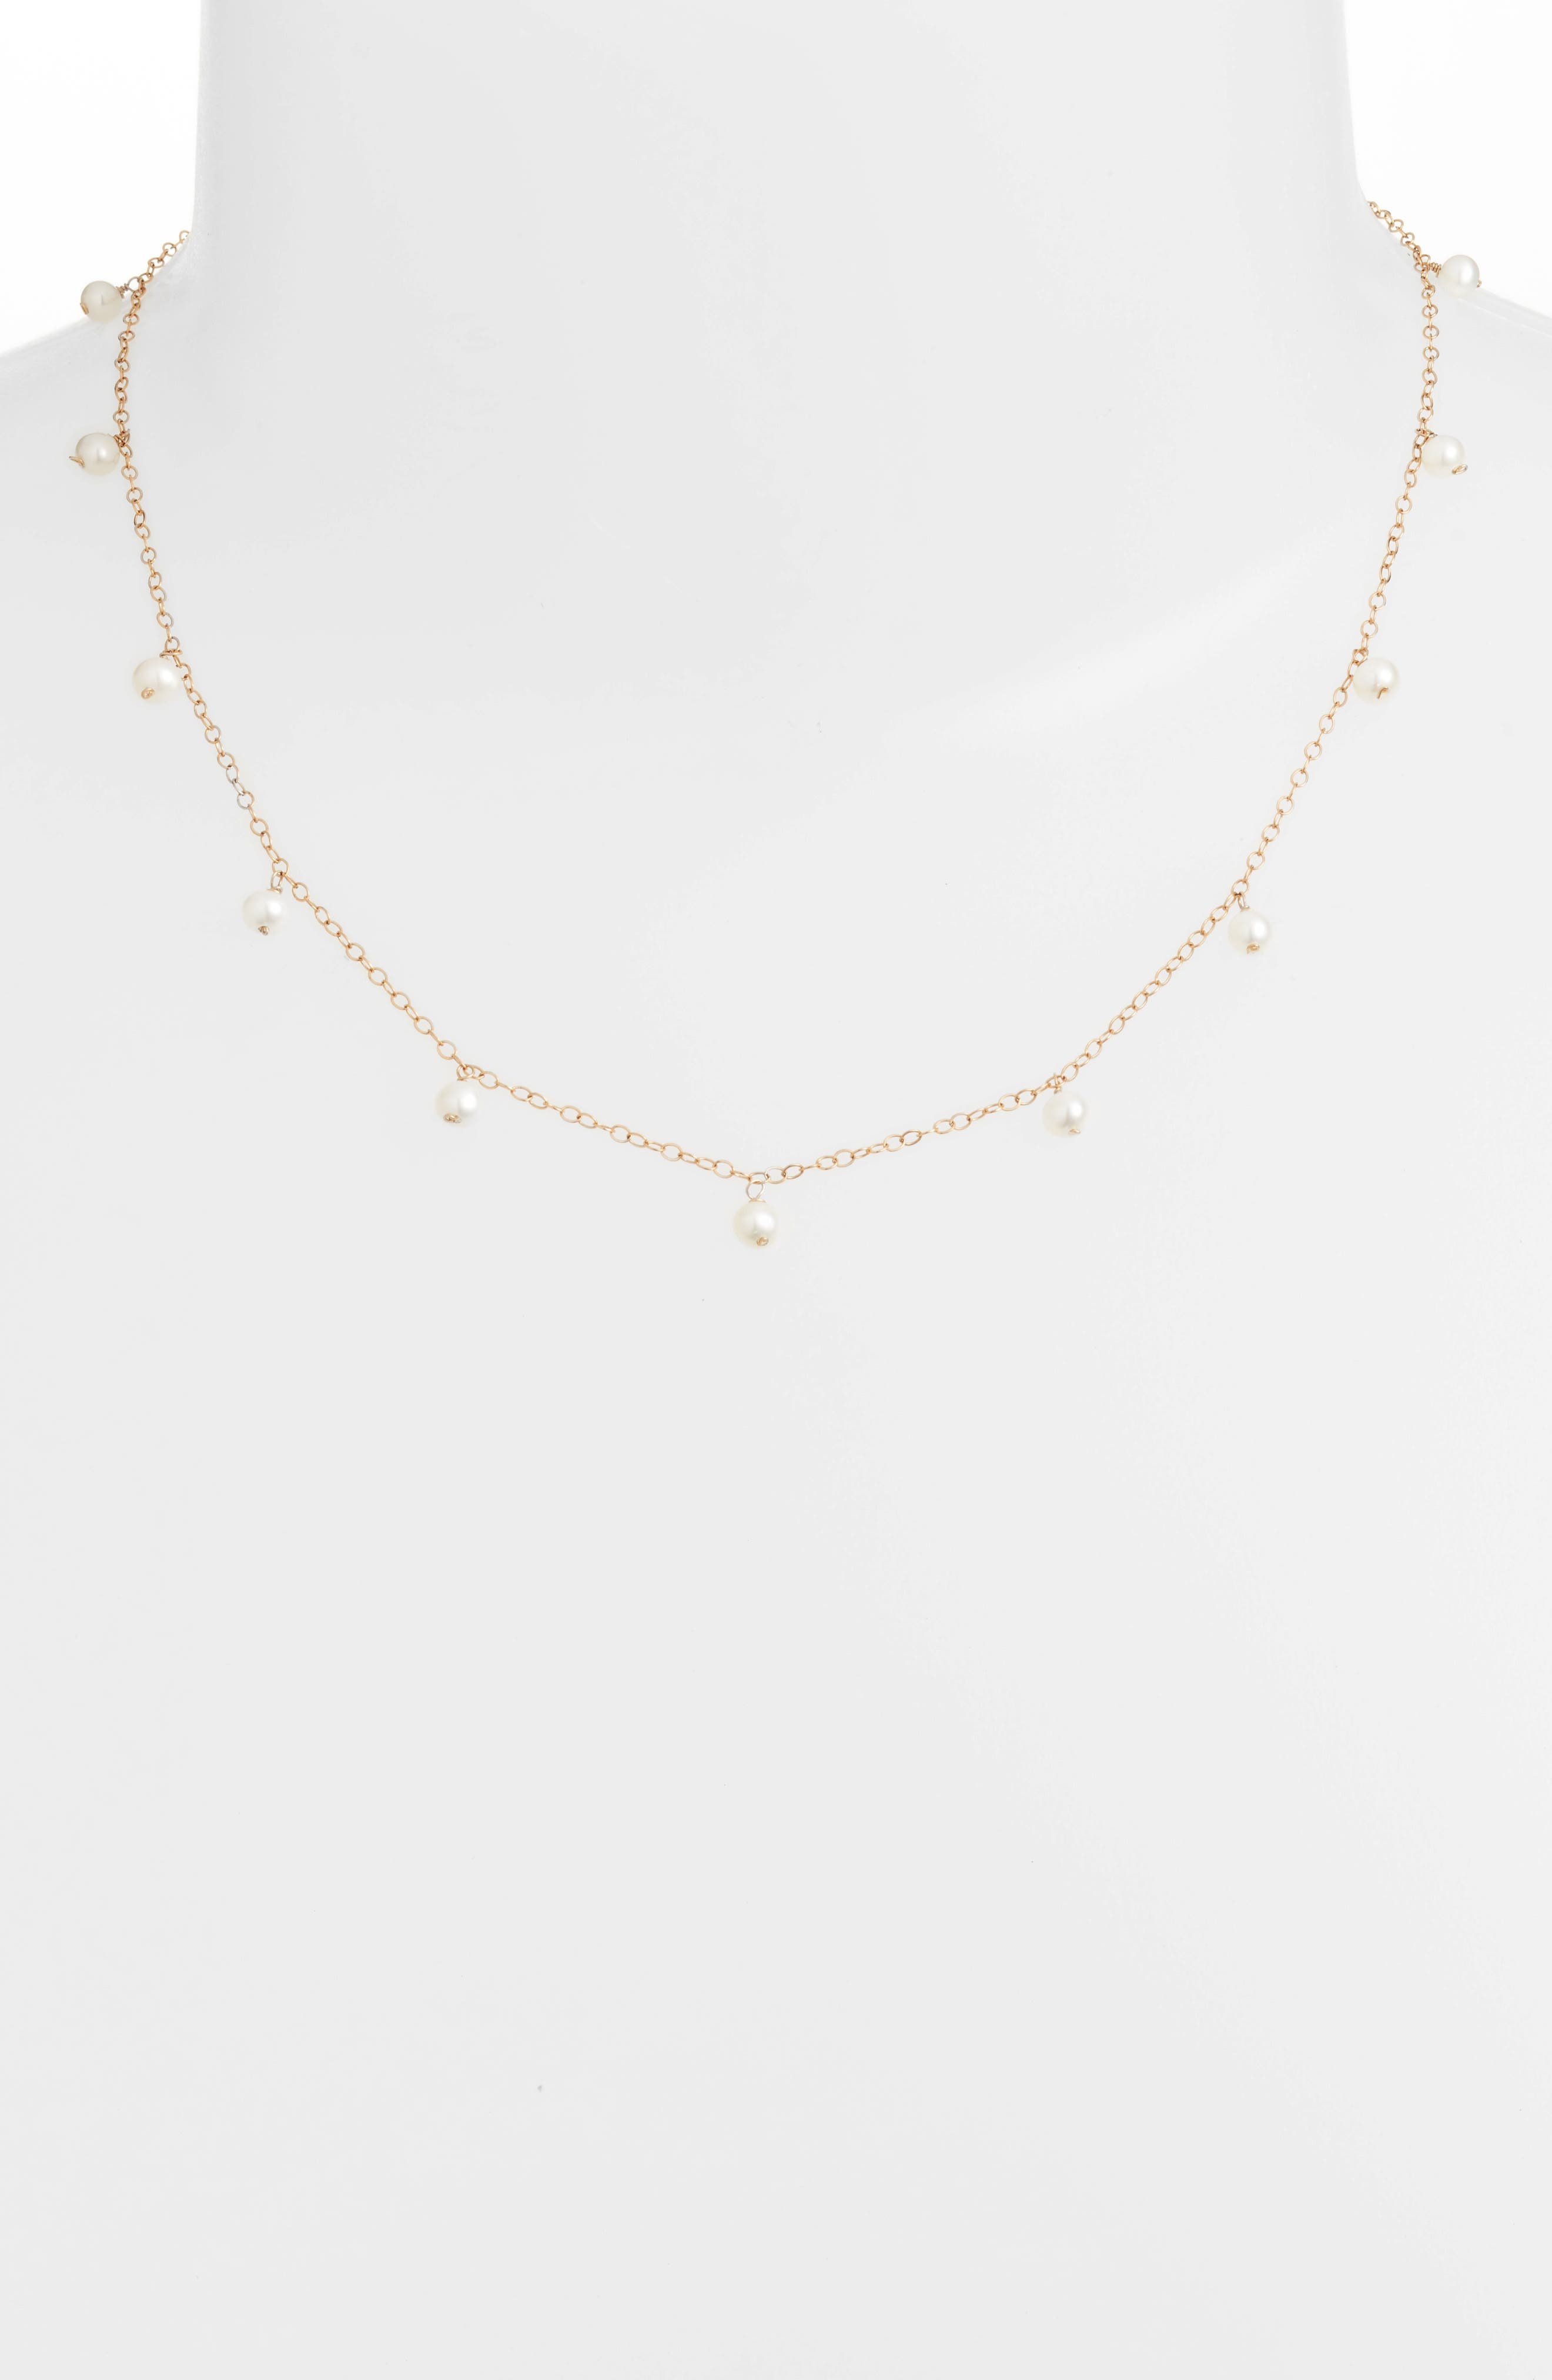 Baby Pearl Station Short Necklace,                             Alternate thumbnail 2, color,                             YELLOW GOLD/ WHITE PEARL